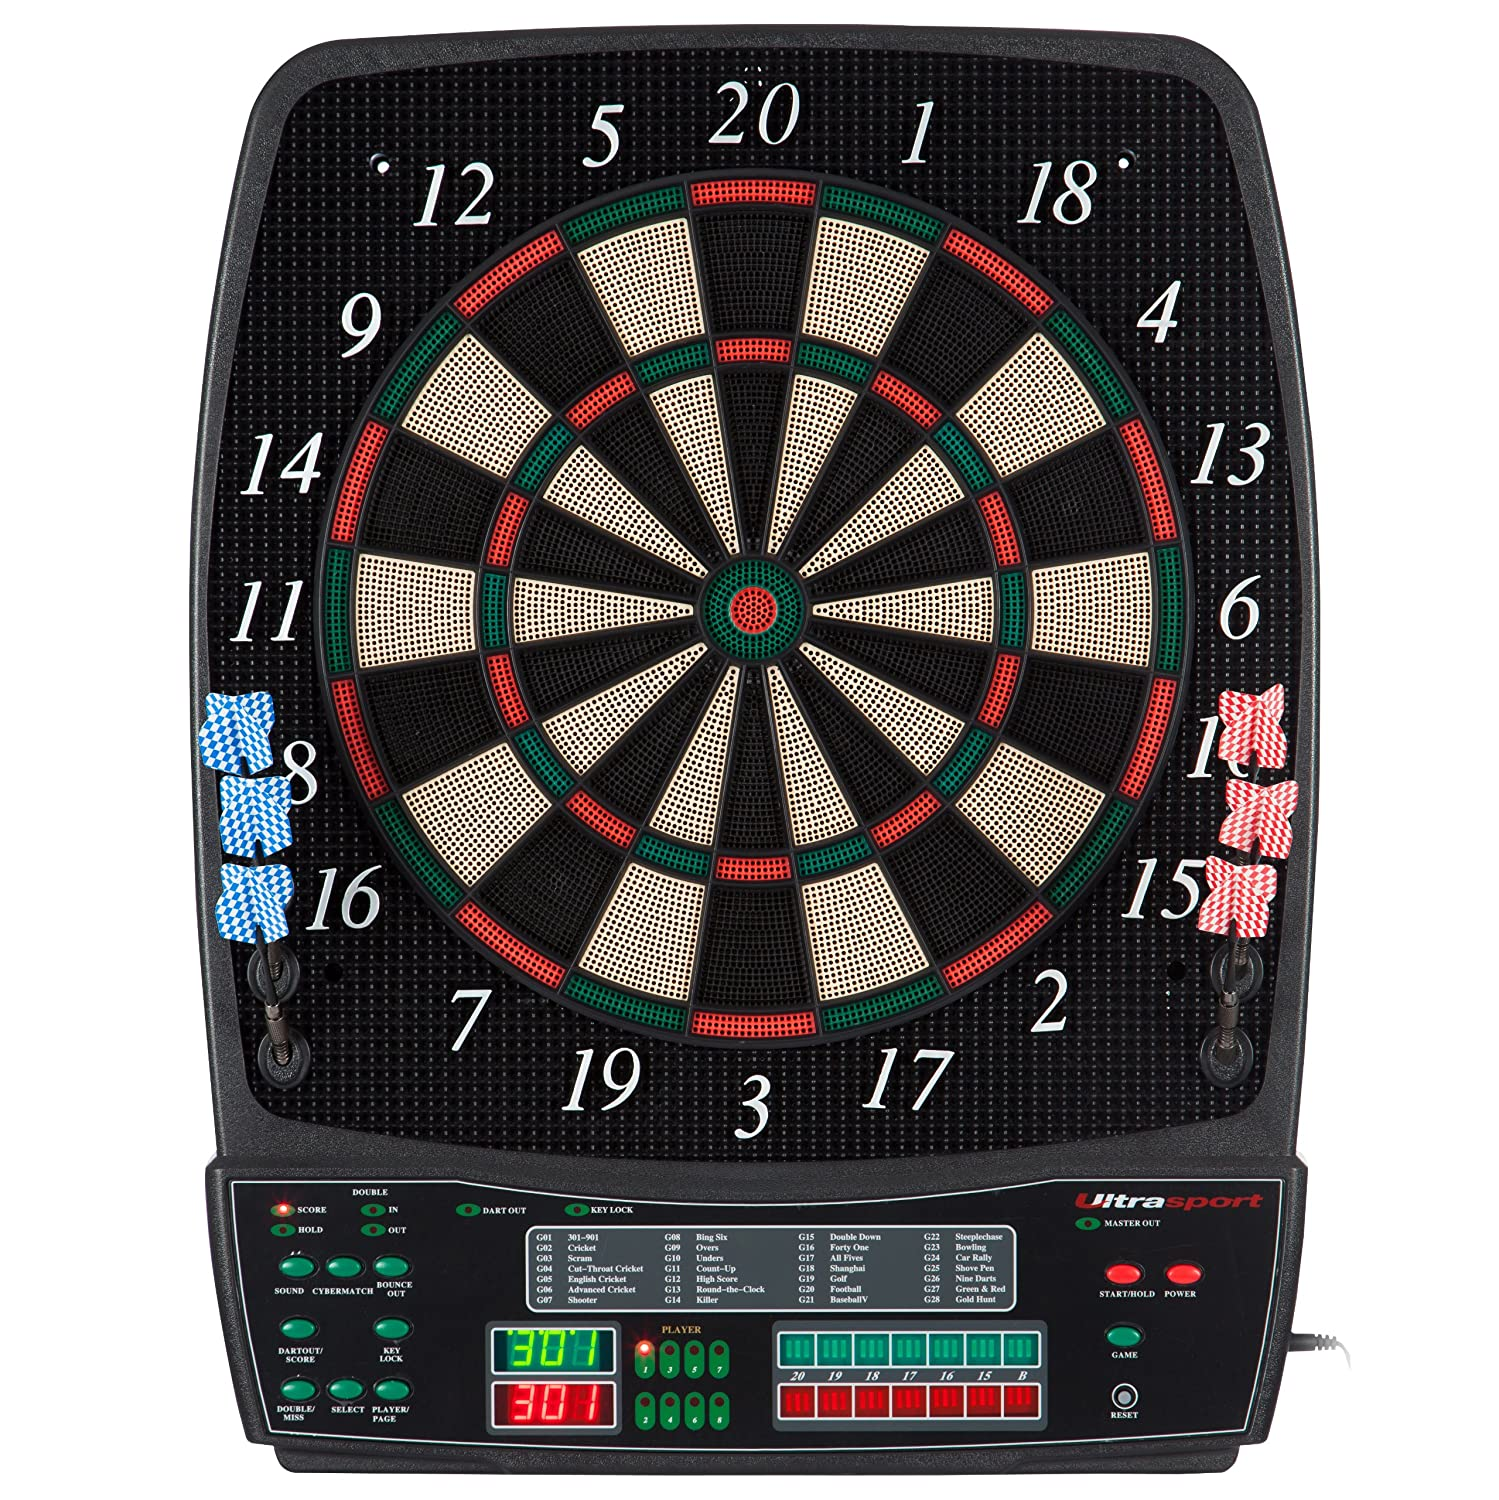 Ultrasport elektronisches Dartboard